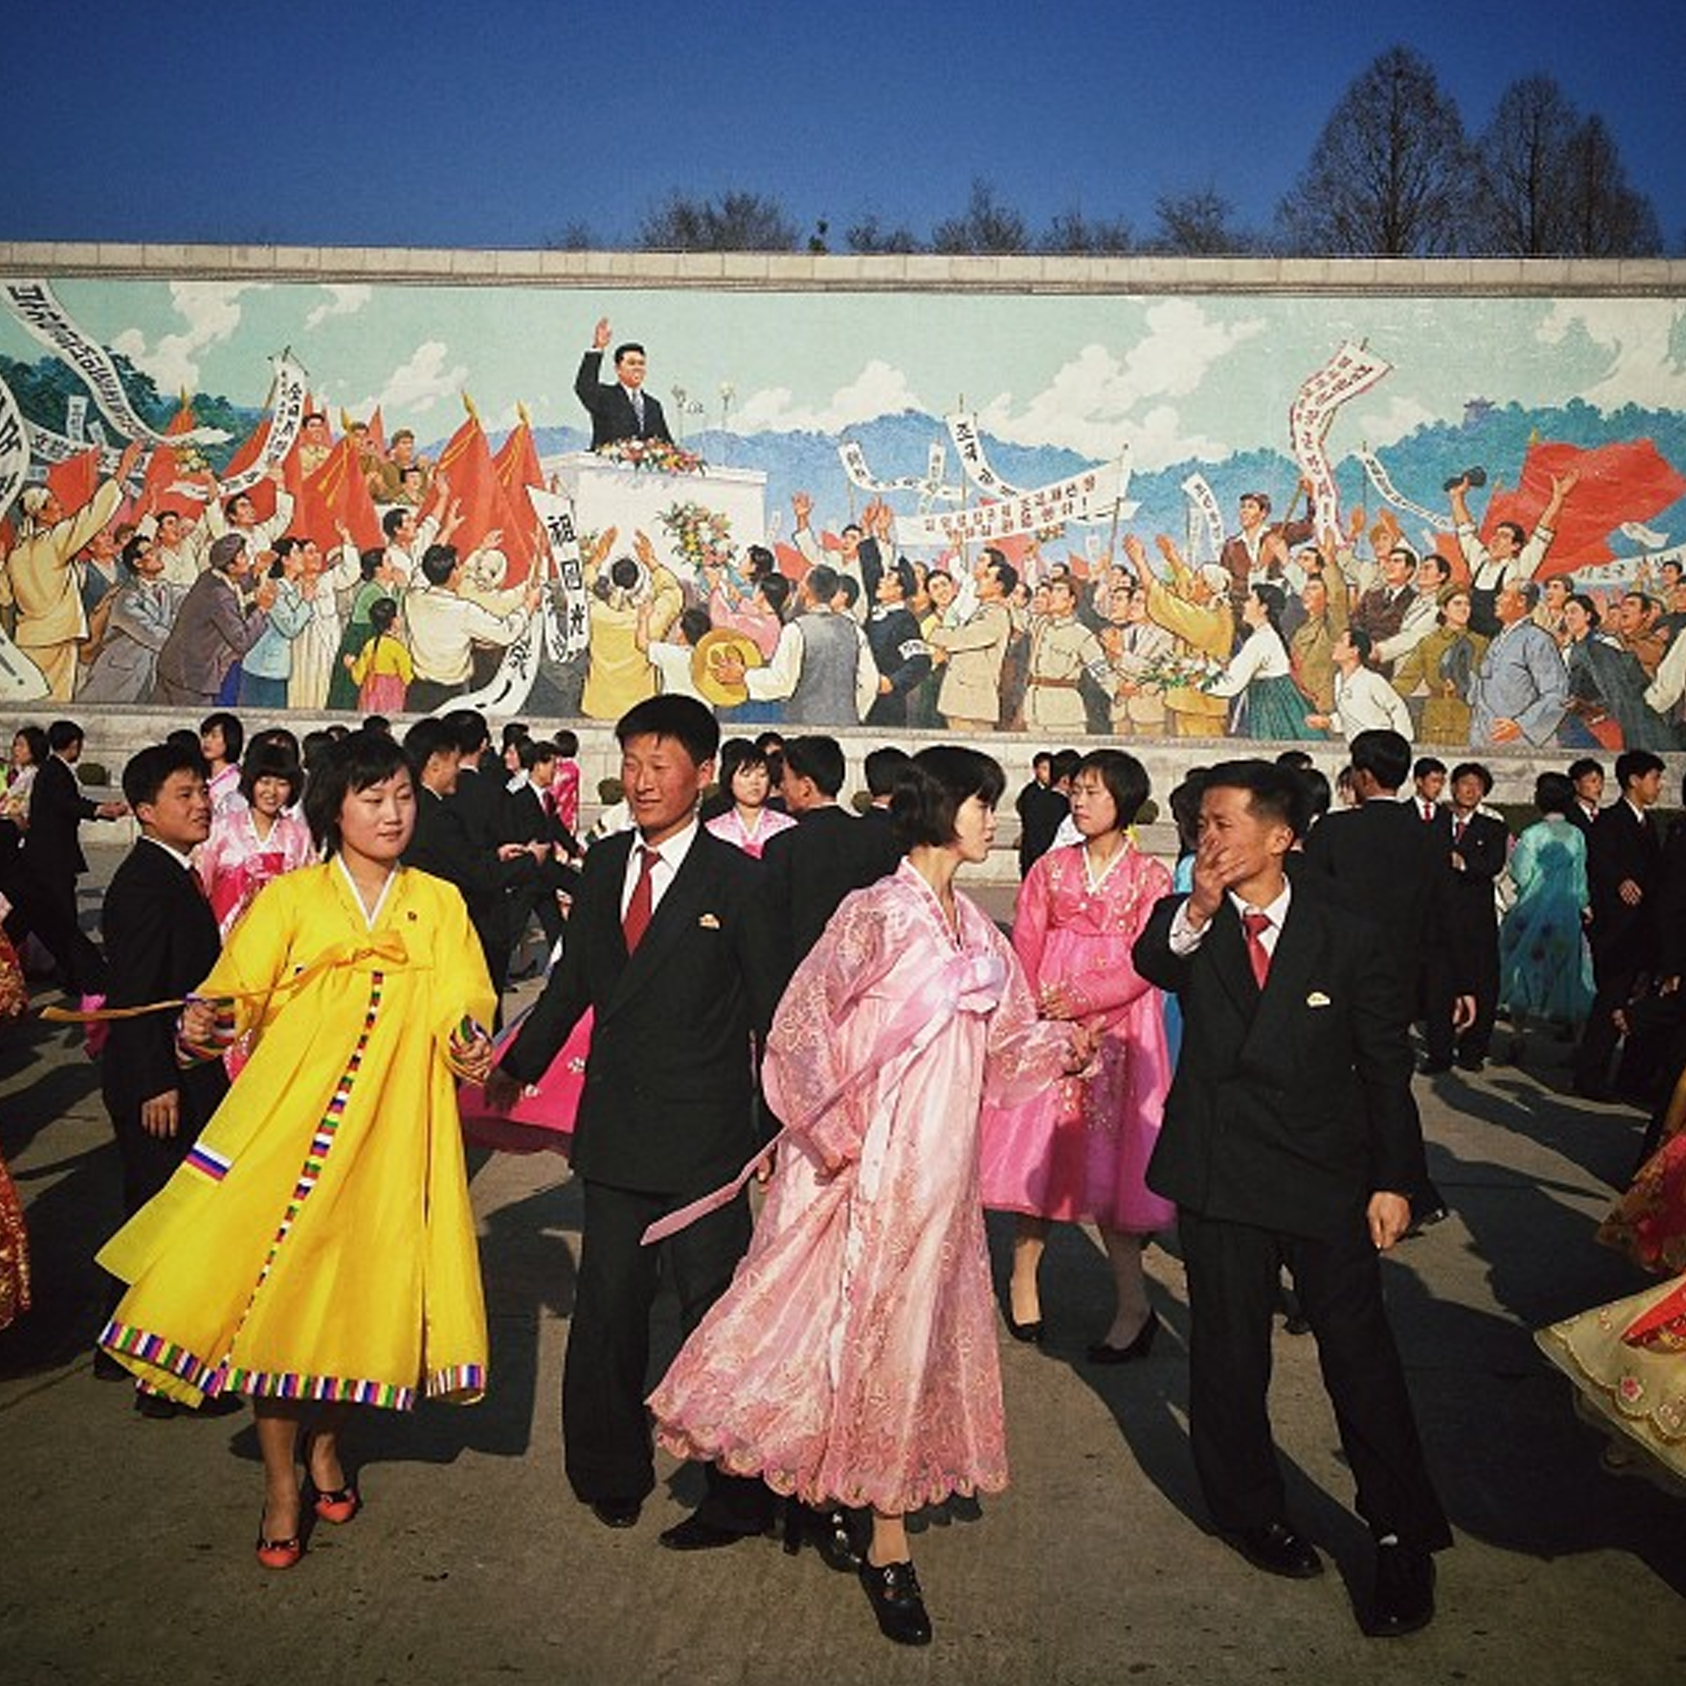 North Koreans dance a traditional folk dance together beneath a huge mosaic of the late leader  Kim Il Sung  in Pyongyang. Image courtesy of David Guttenfelder.